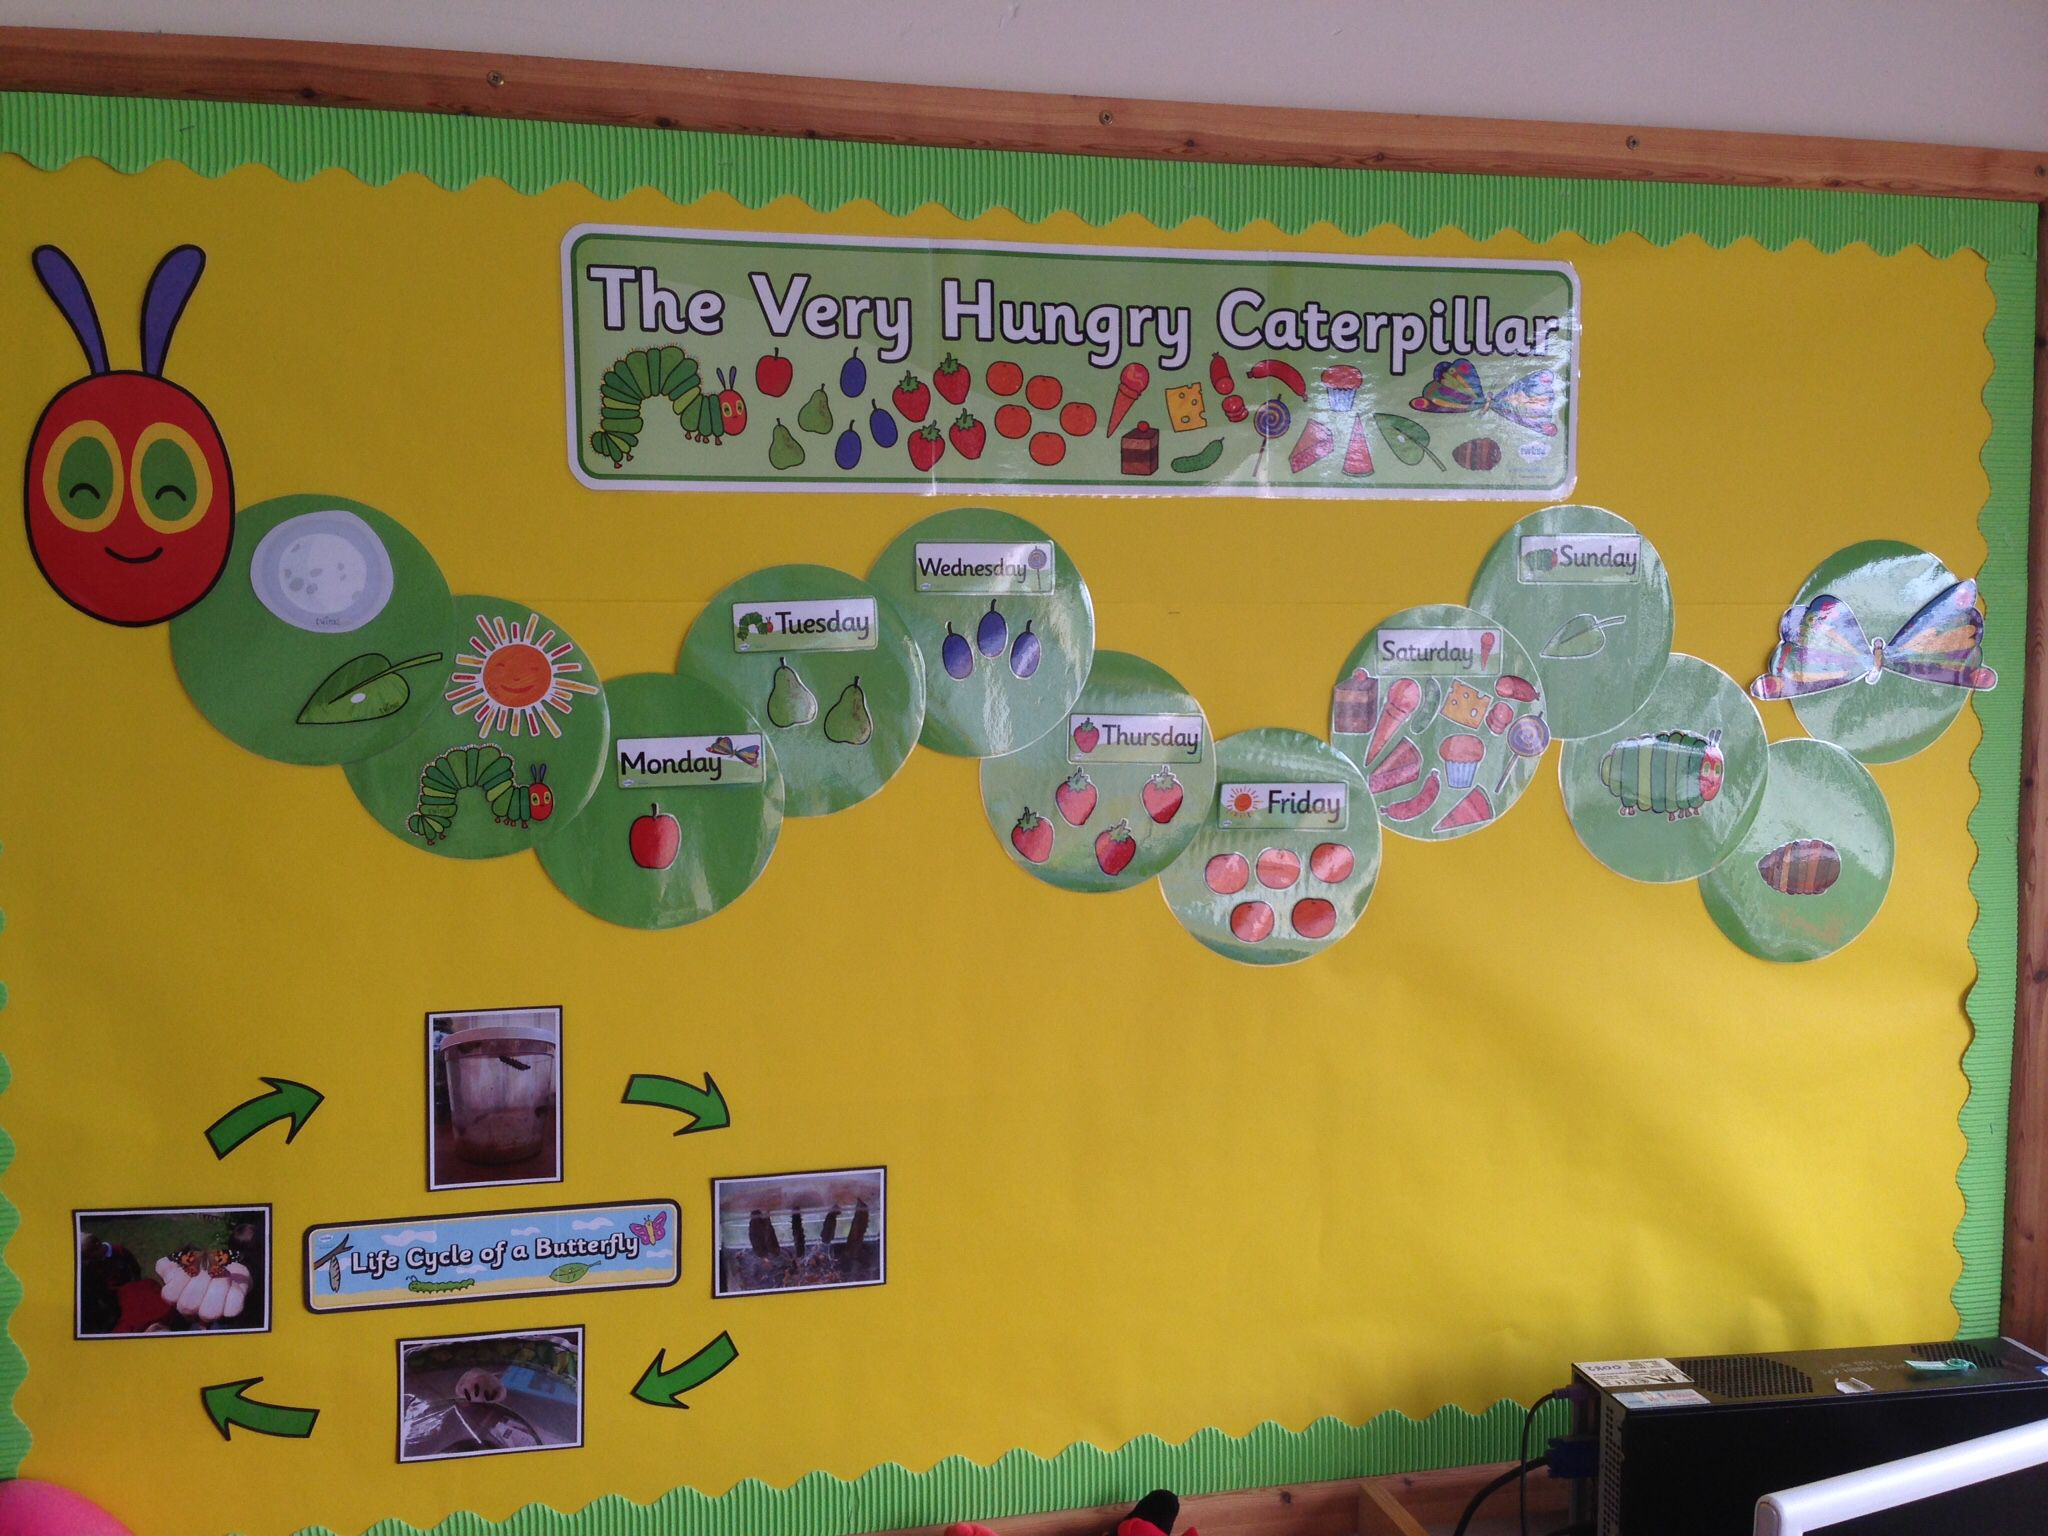 The Very Hungry Caterpillar Display Sequencing The Story